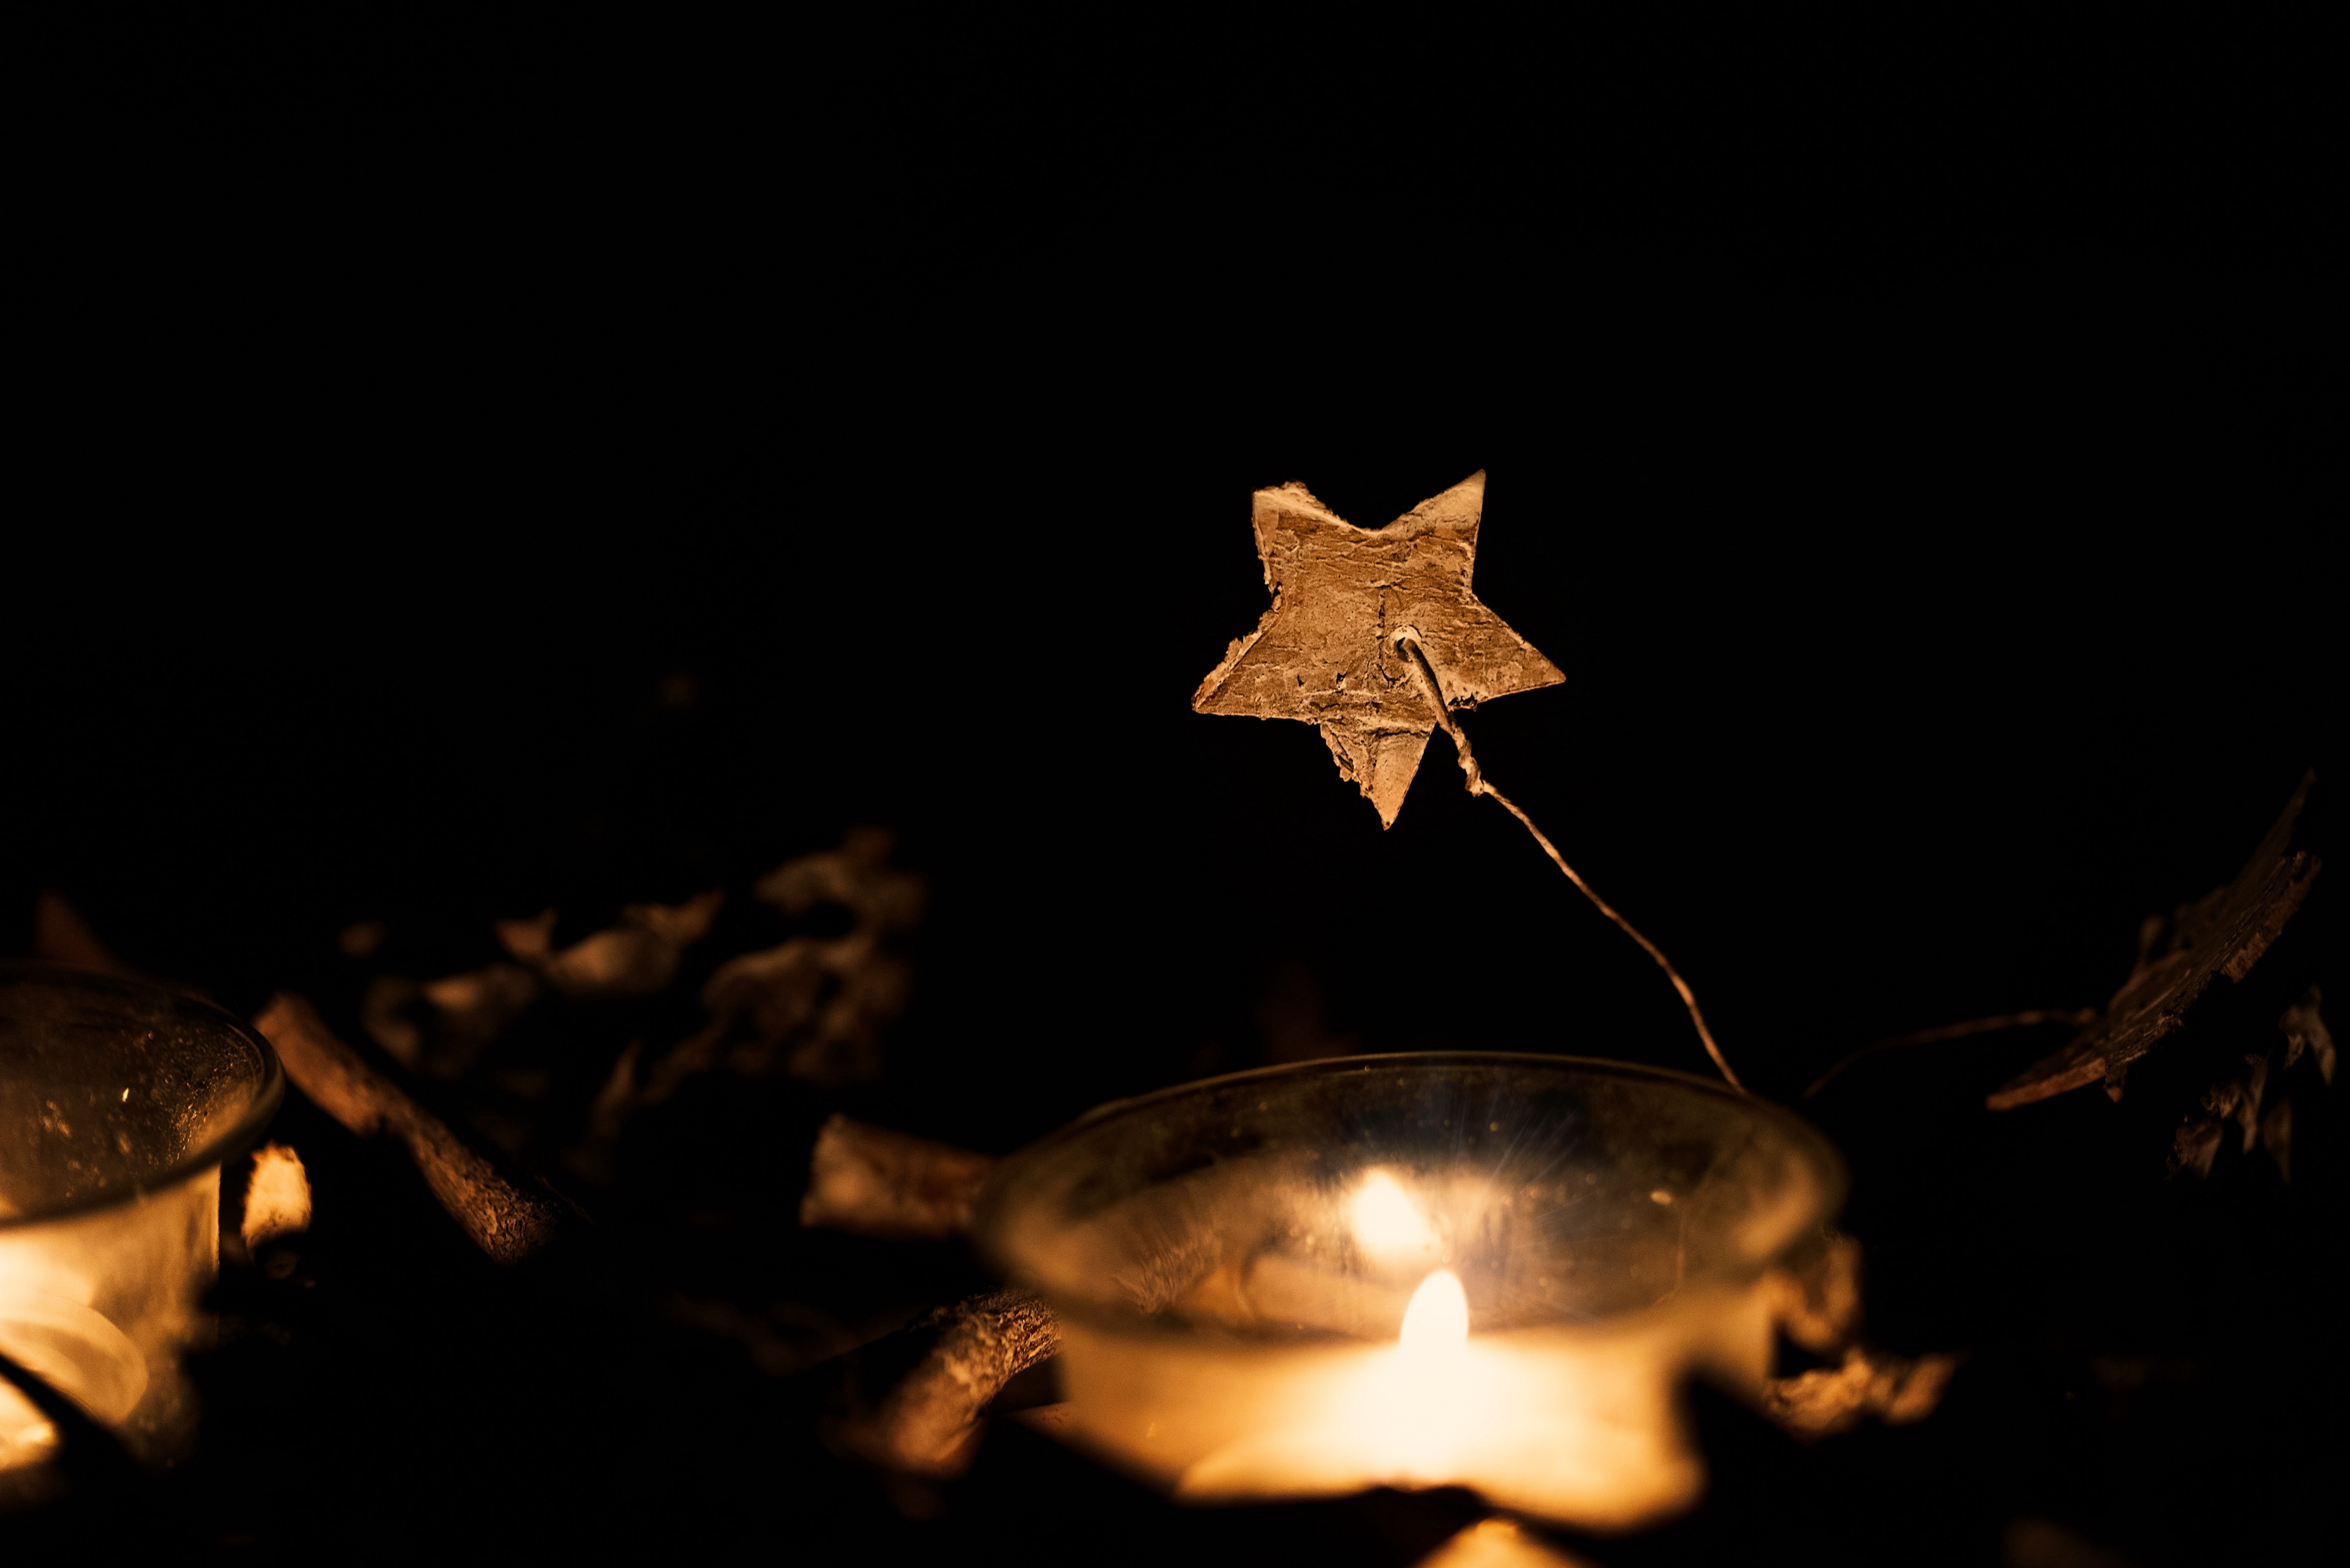 Small gold star suspended above candle flame with black background